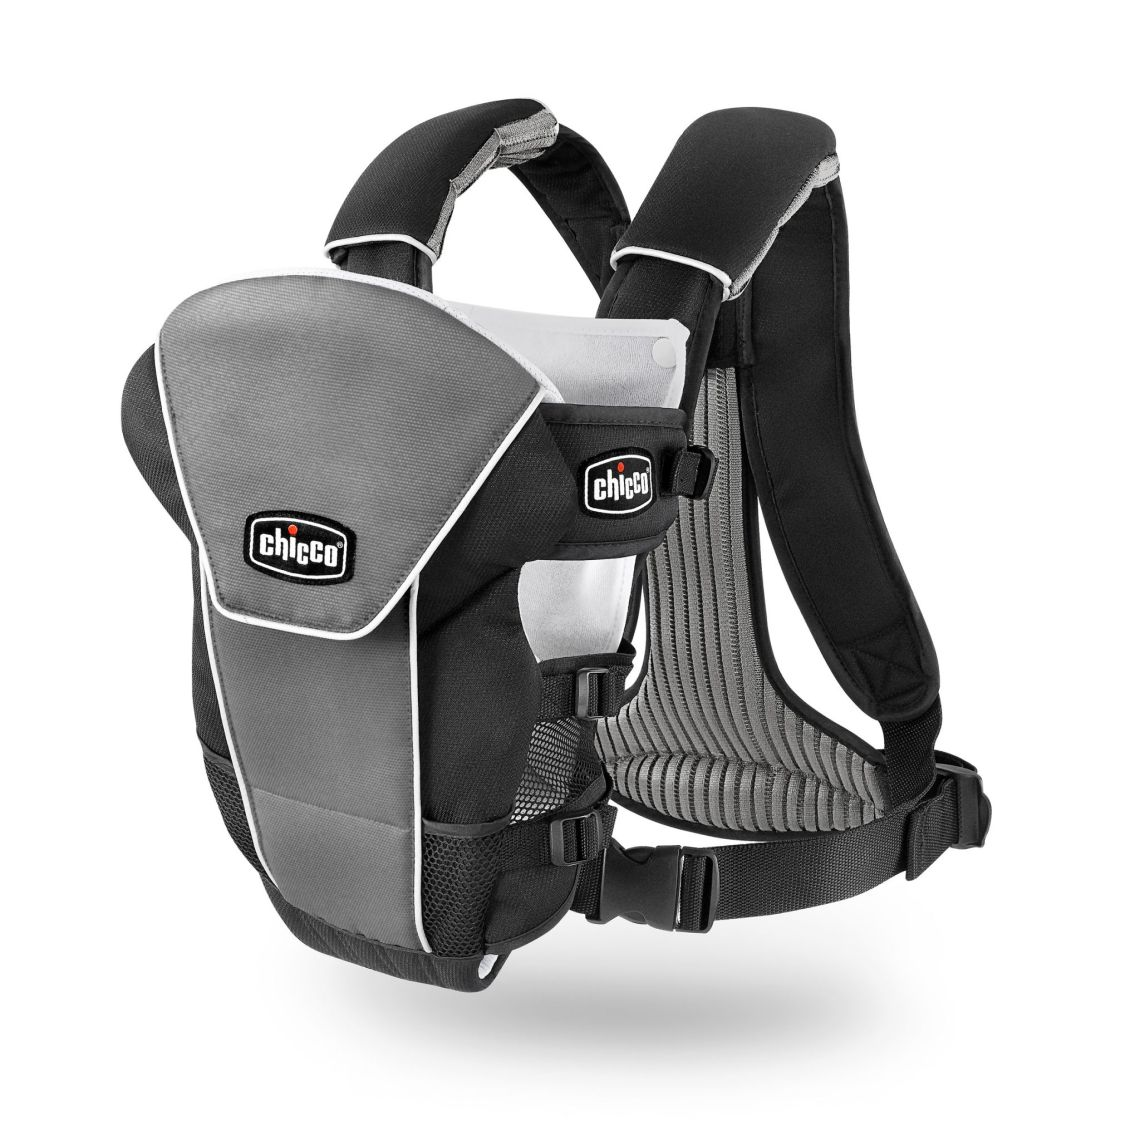 Chicco UltraSoft Magic Air Infant Carrier, Q Collection - Walmart.com